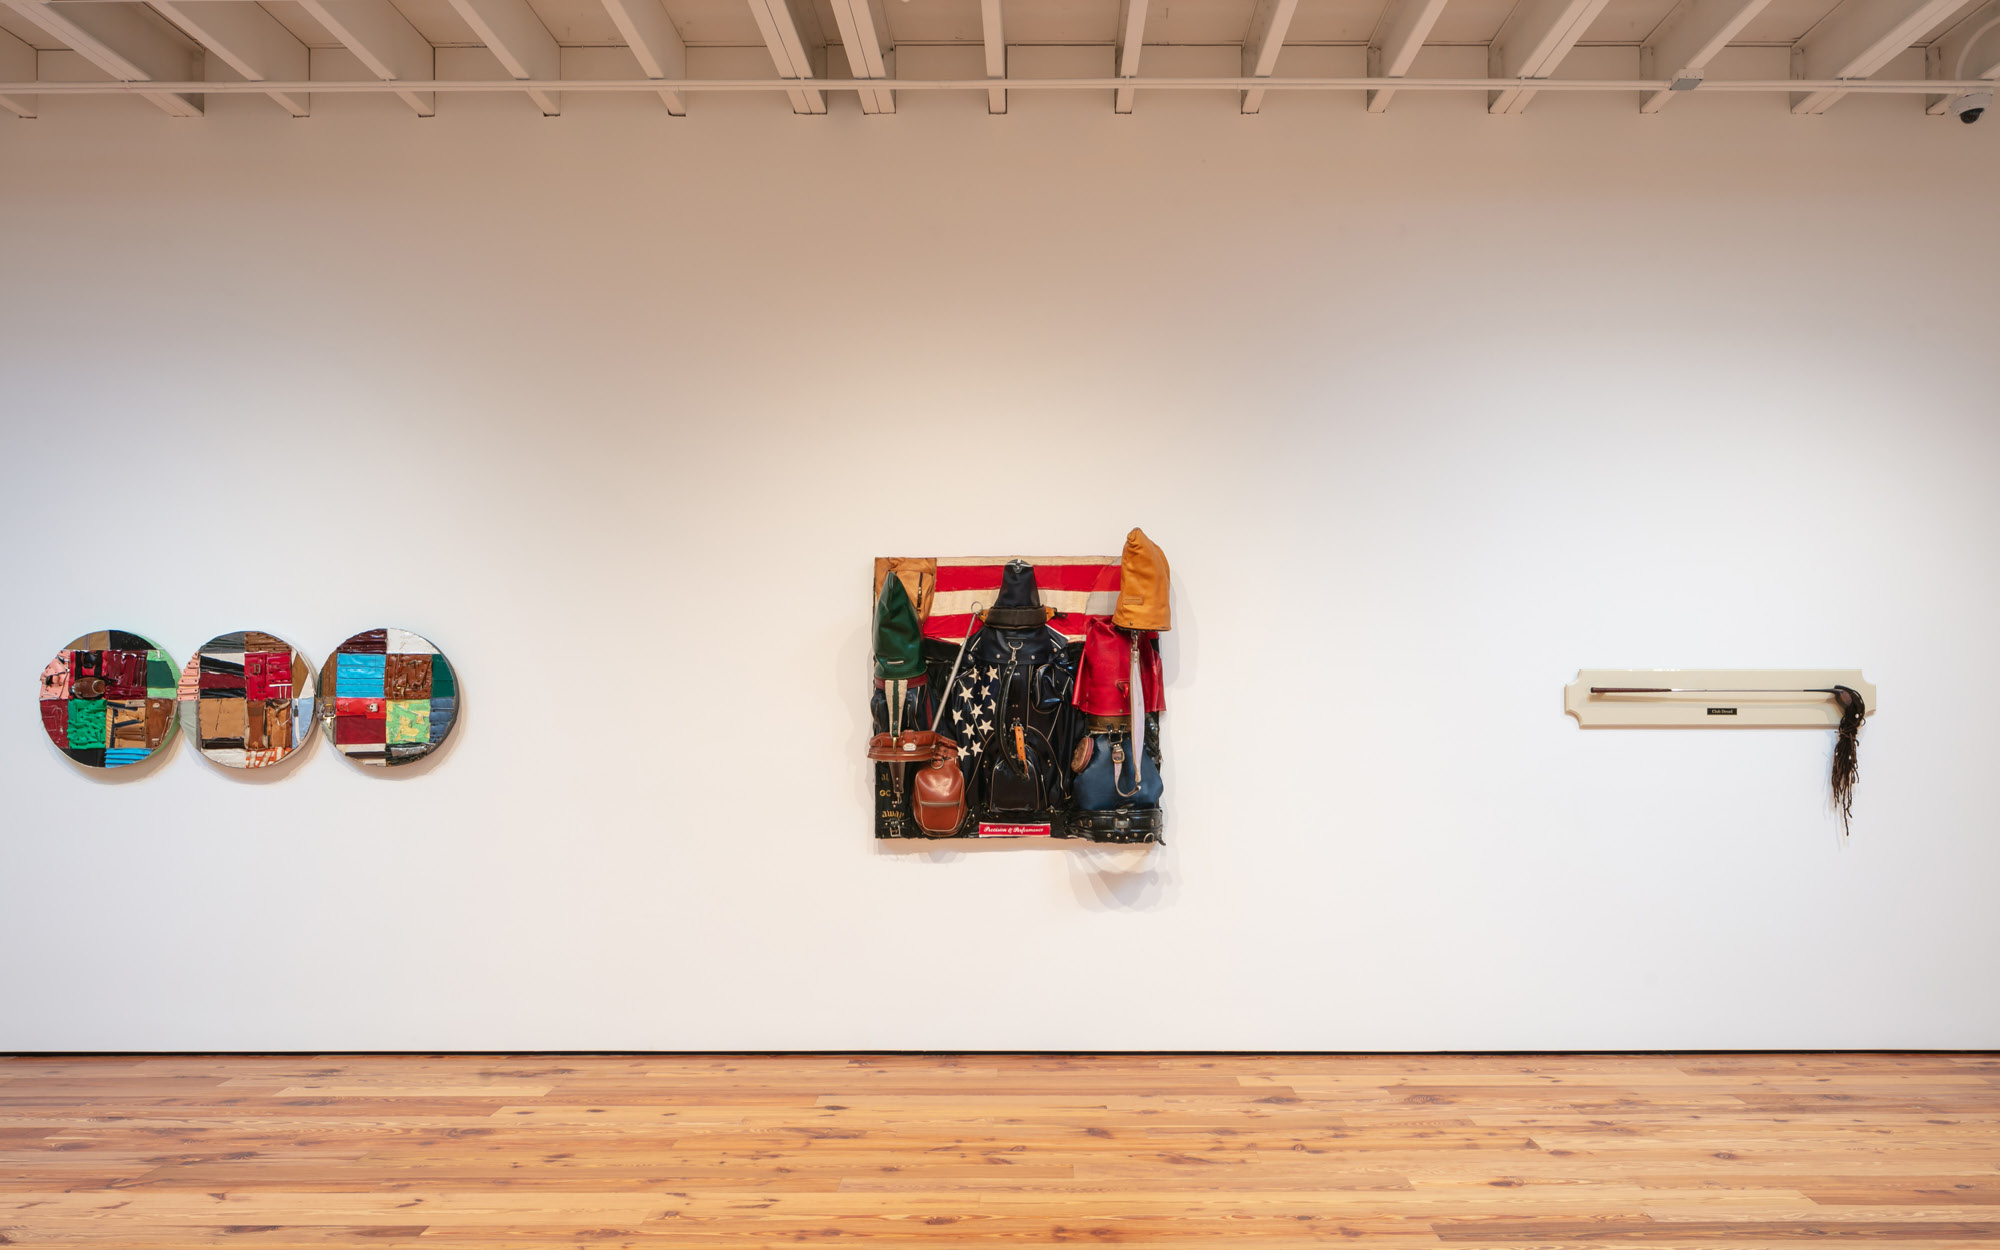 """Installation view of """"Charles McGill: In the Rough"""" at Sarasota Art Museum. On view May 29 - November 21, 2021, Photo: Ryan Gamma"""